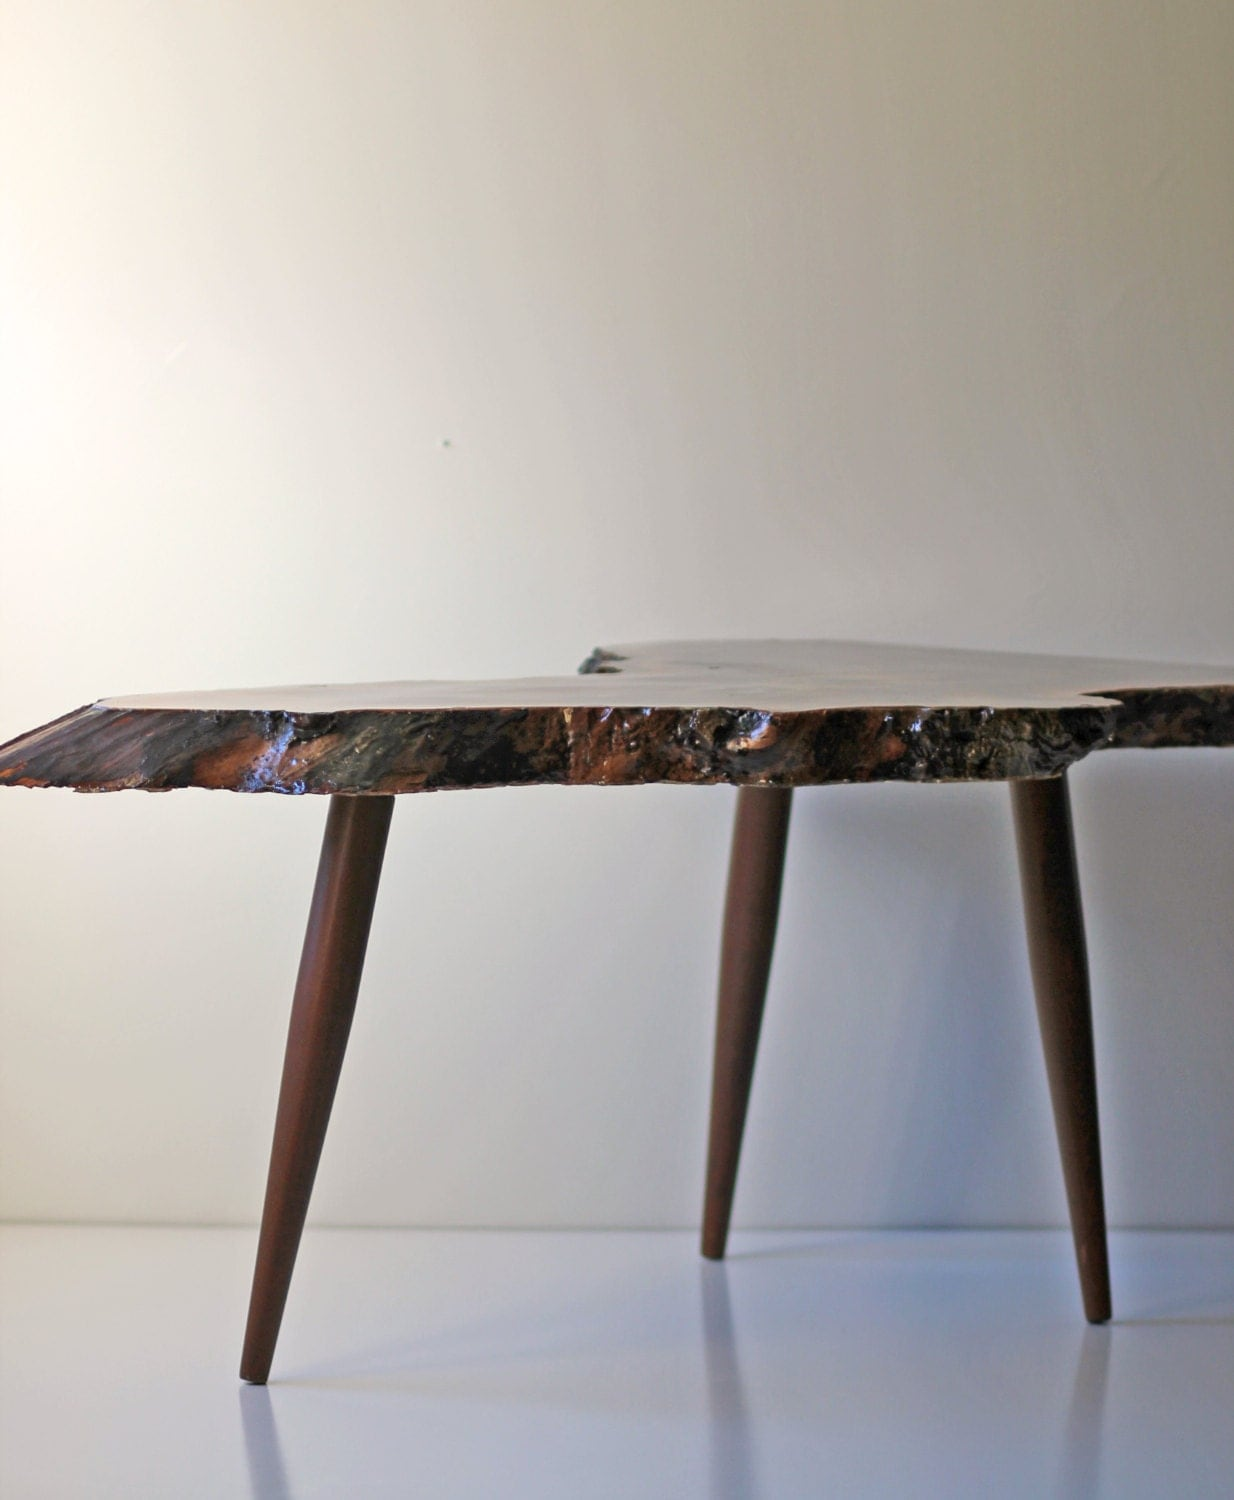 Legs For Live Edge Coffee Table: Live Edge Coffee Table With Tapered Legs By ModishVintage